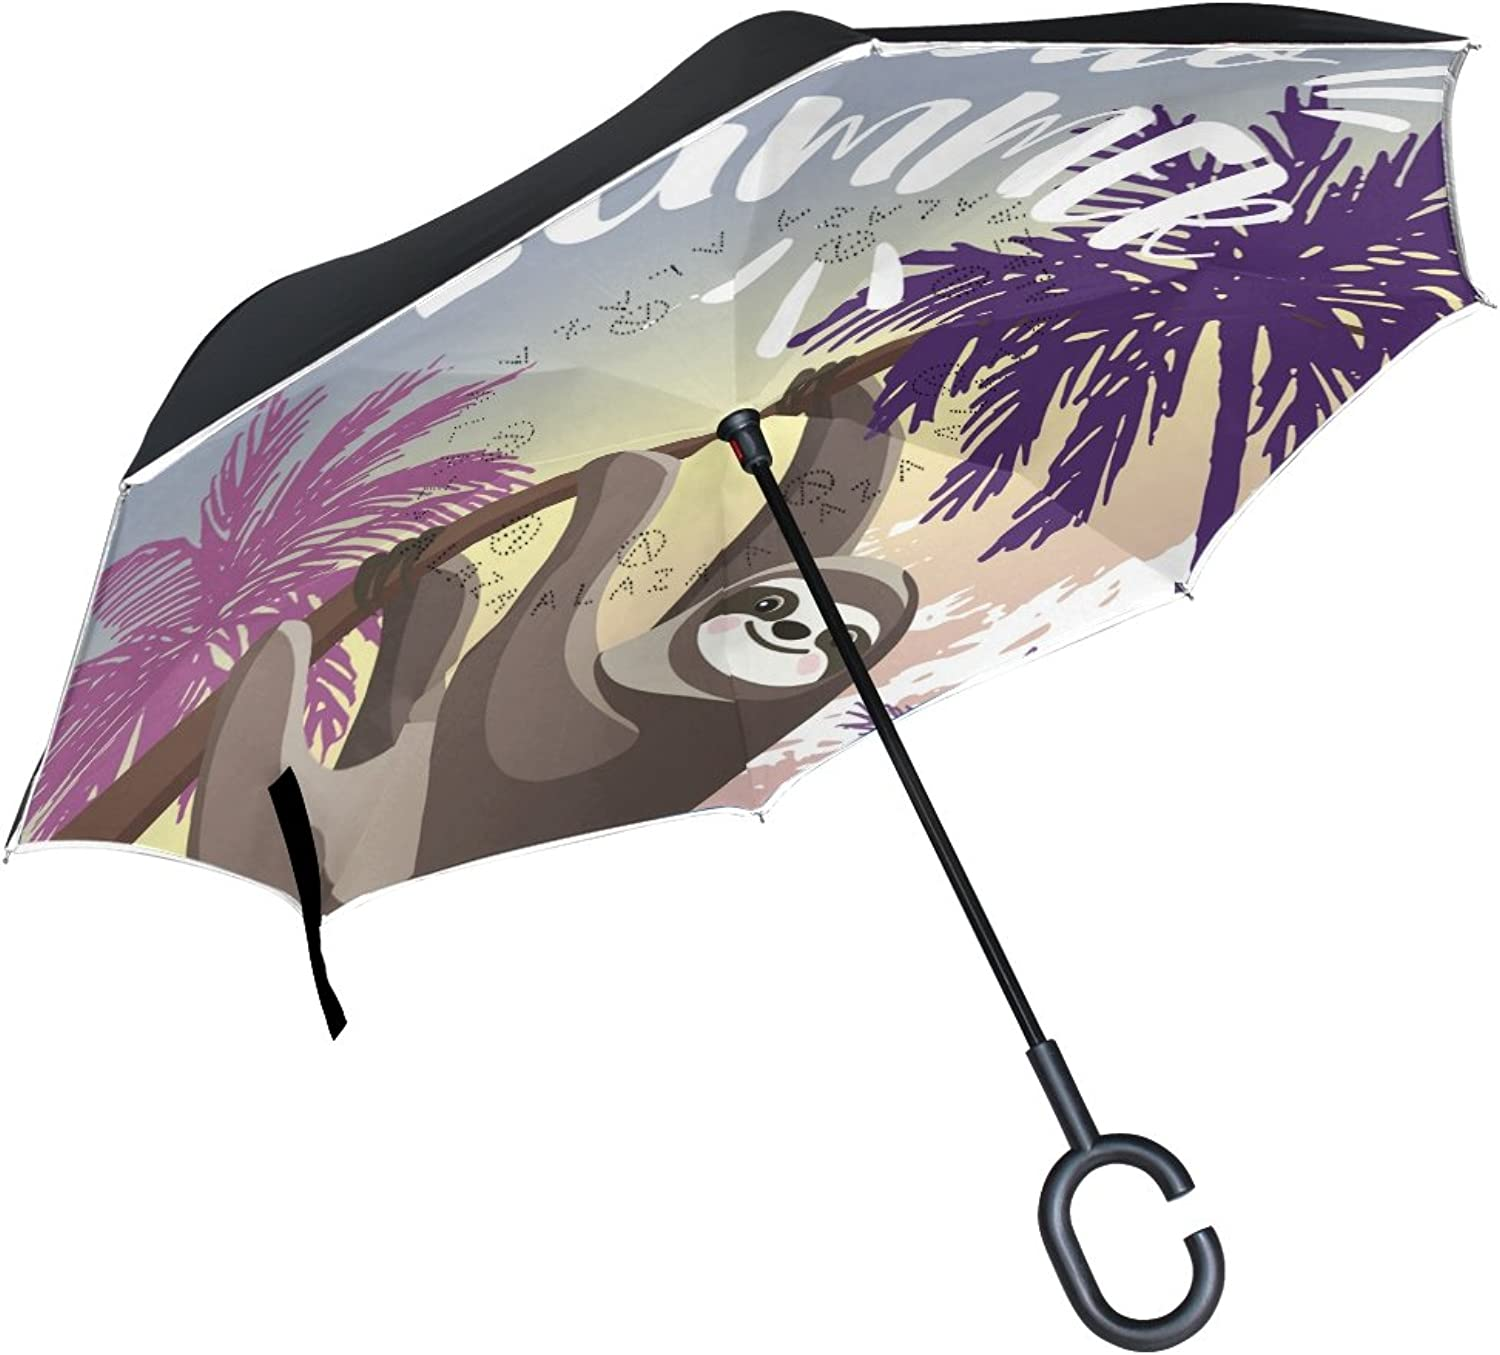 FOLPPLY Ingreened Umbrella Hello Summer Cute Sloth,Double Layer Reverse Umbrella Waterproof for Car Rain Outdoor with CShaped Handle